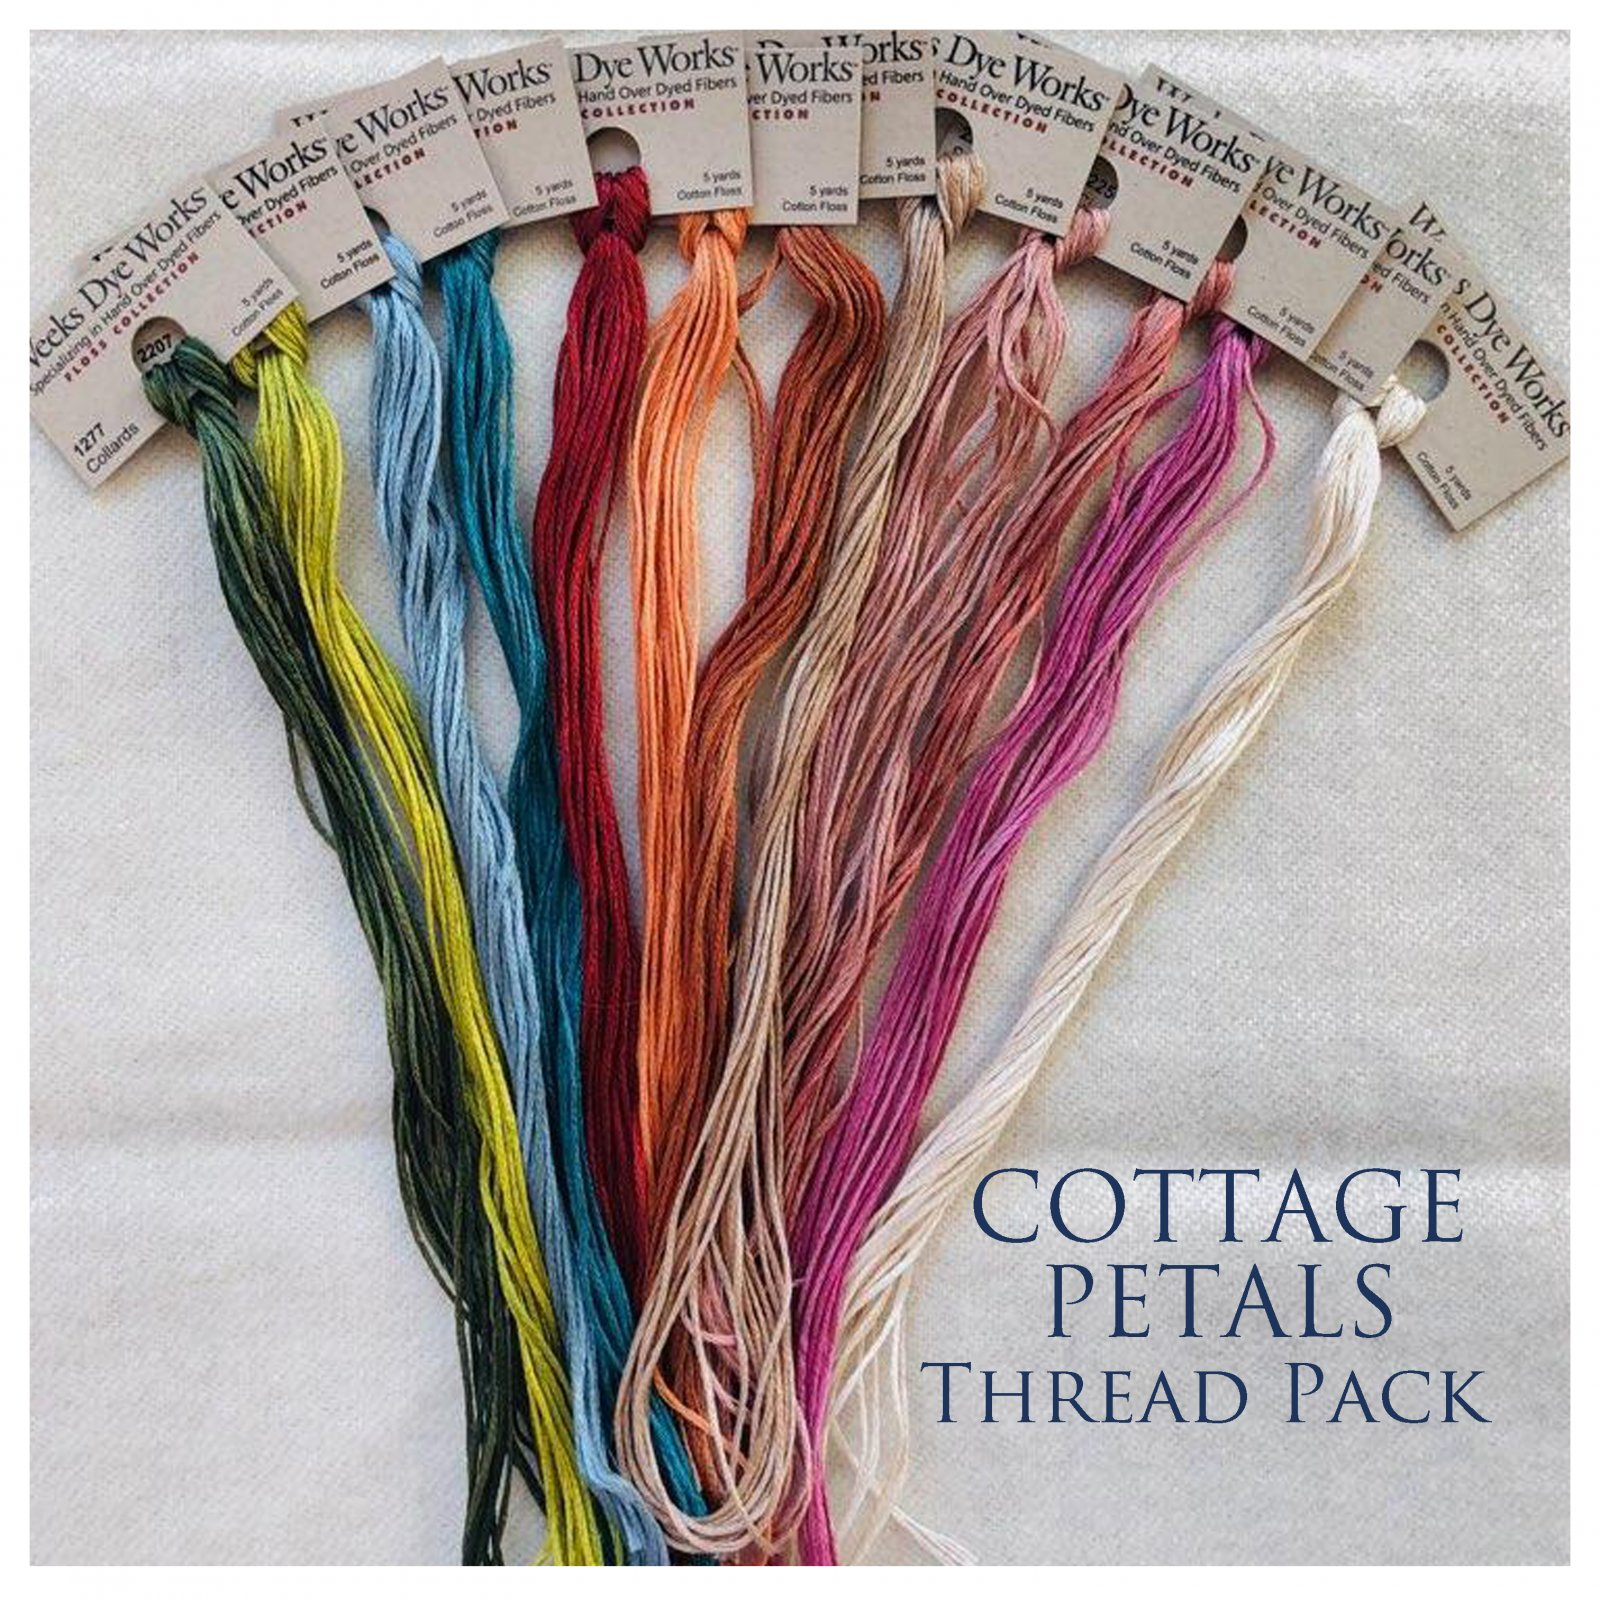 Cottage Petals Thread Pack